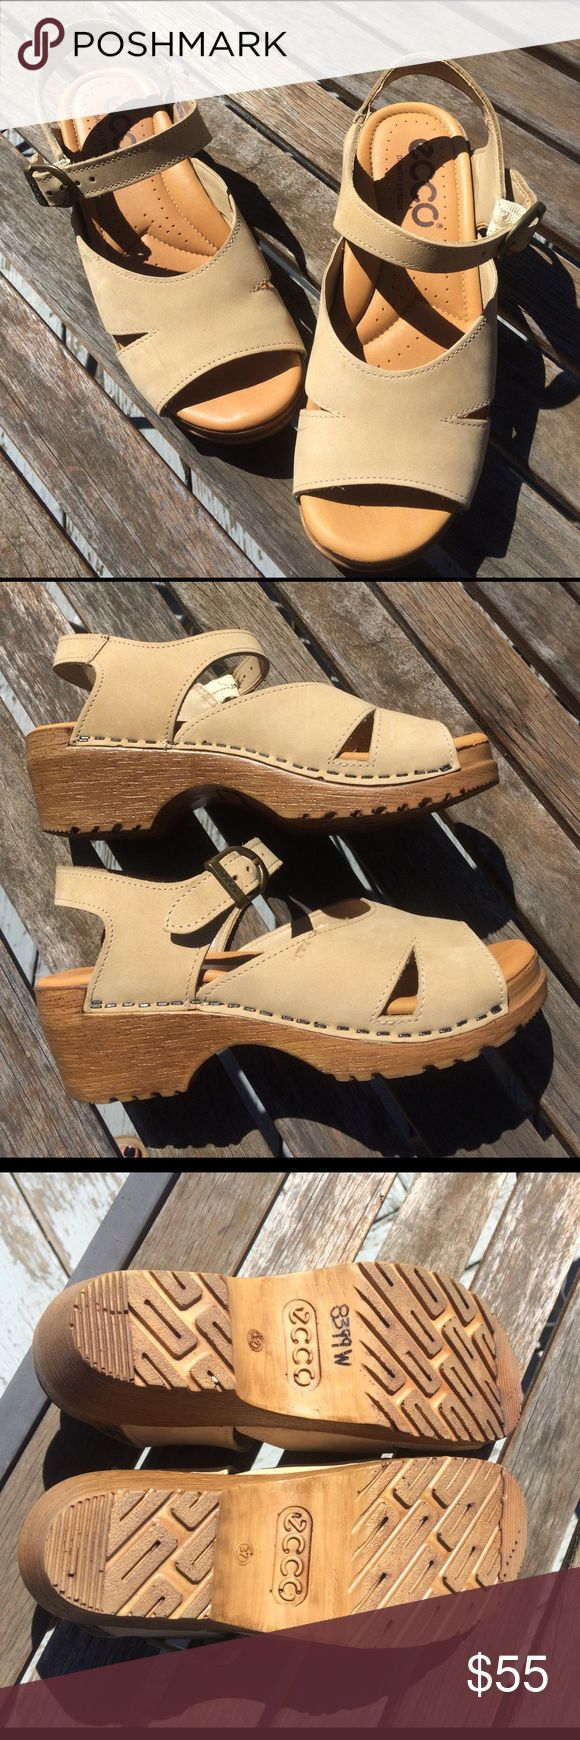 Tan Ecco Sandal Clogs Super cute and comfy danish design sandals. In very good condition. Really comfortable to walk in. Very good condition w a few barely noticeable scuffs outside and a little peeling/cracking as shown in last pictures but nothing to write home about! Ecco Shoes Mules & Clogs